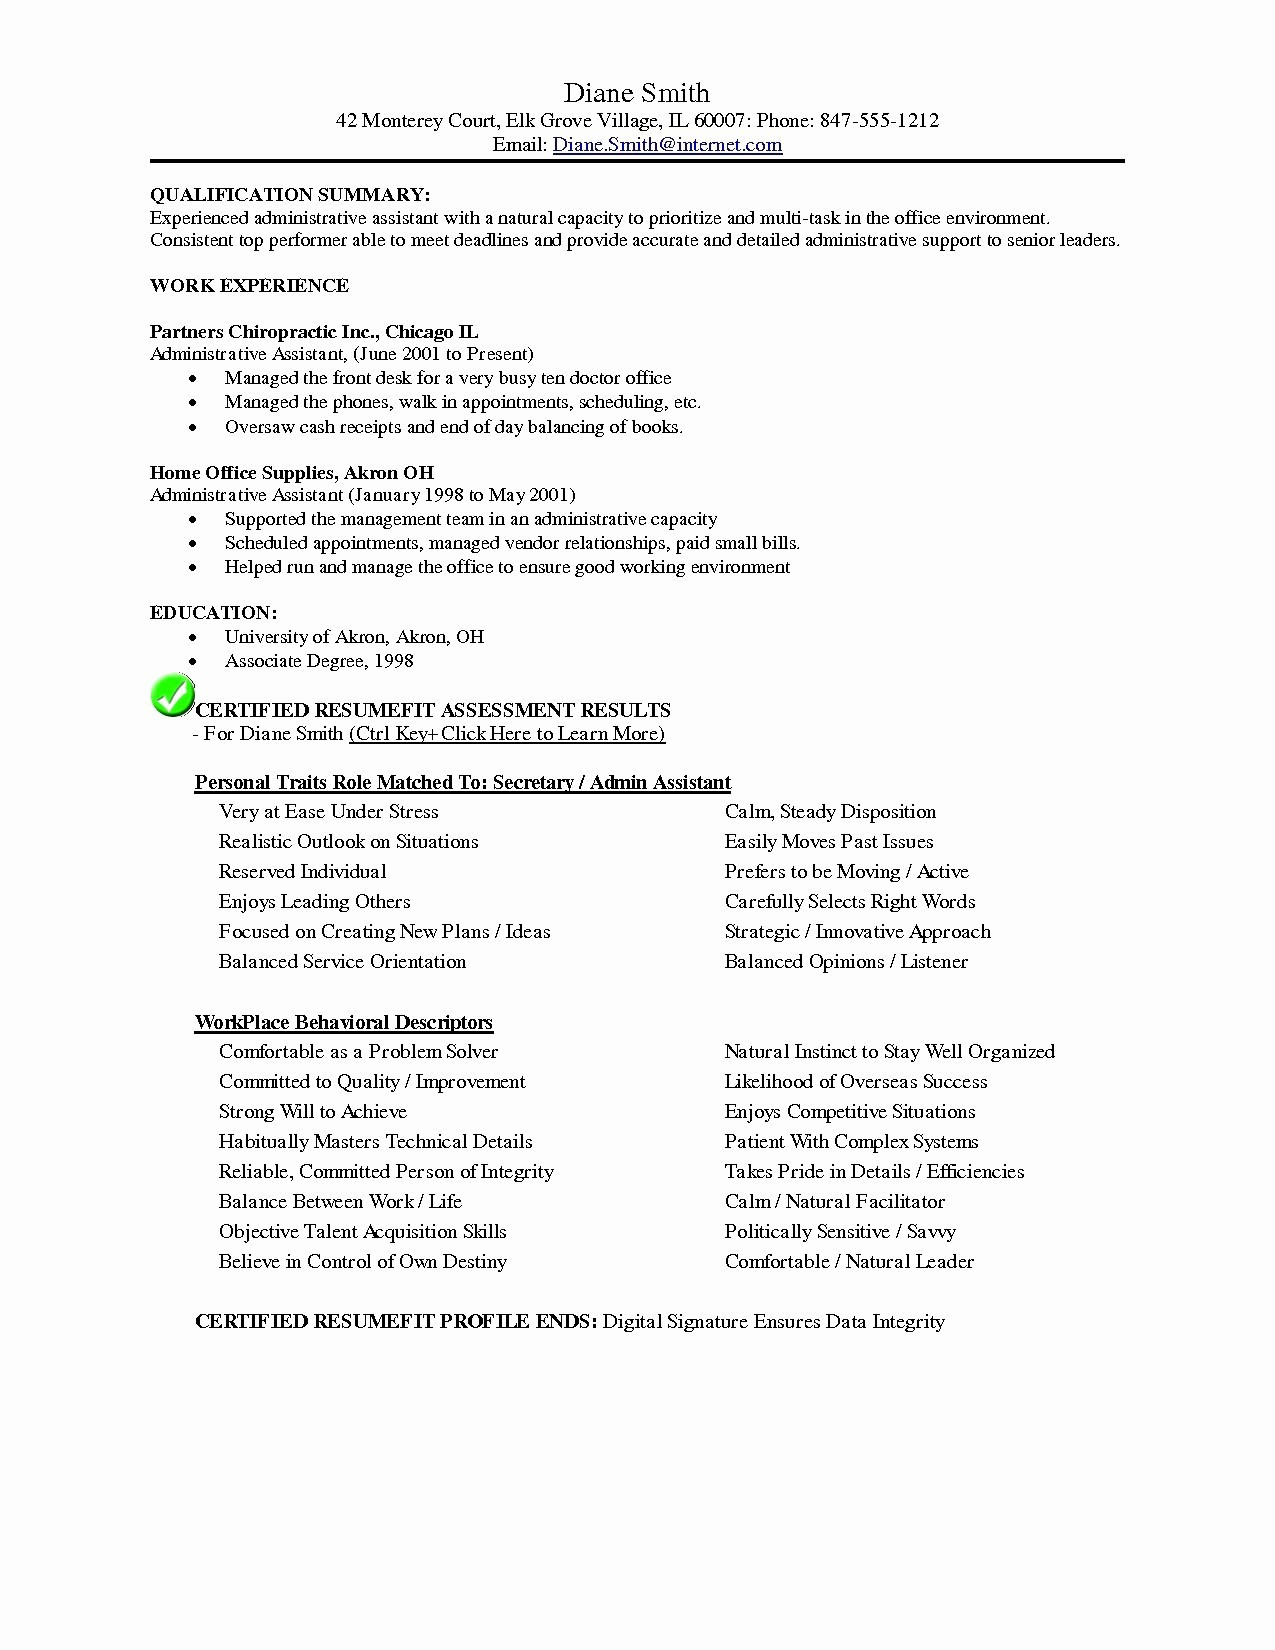 Medical Office Manager Resume Examples - New Resume Samples for Administrative assistant